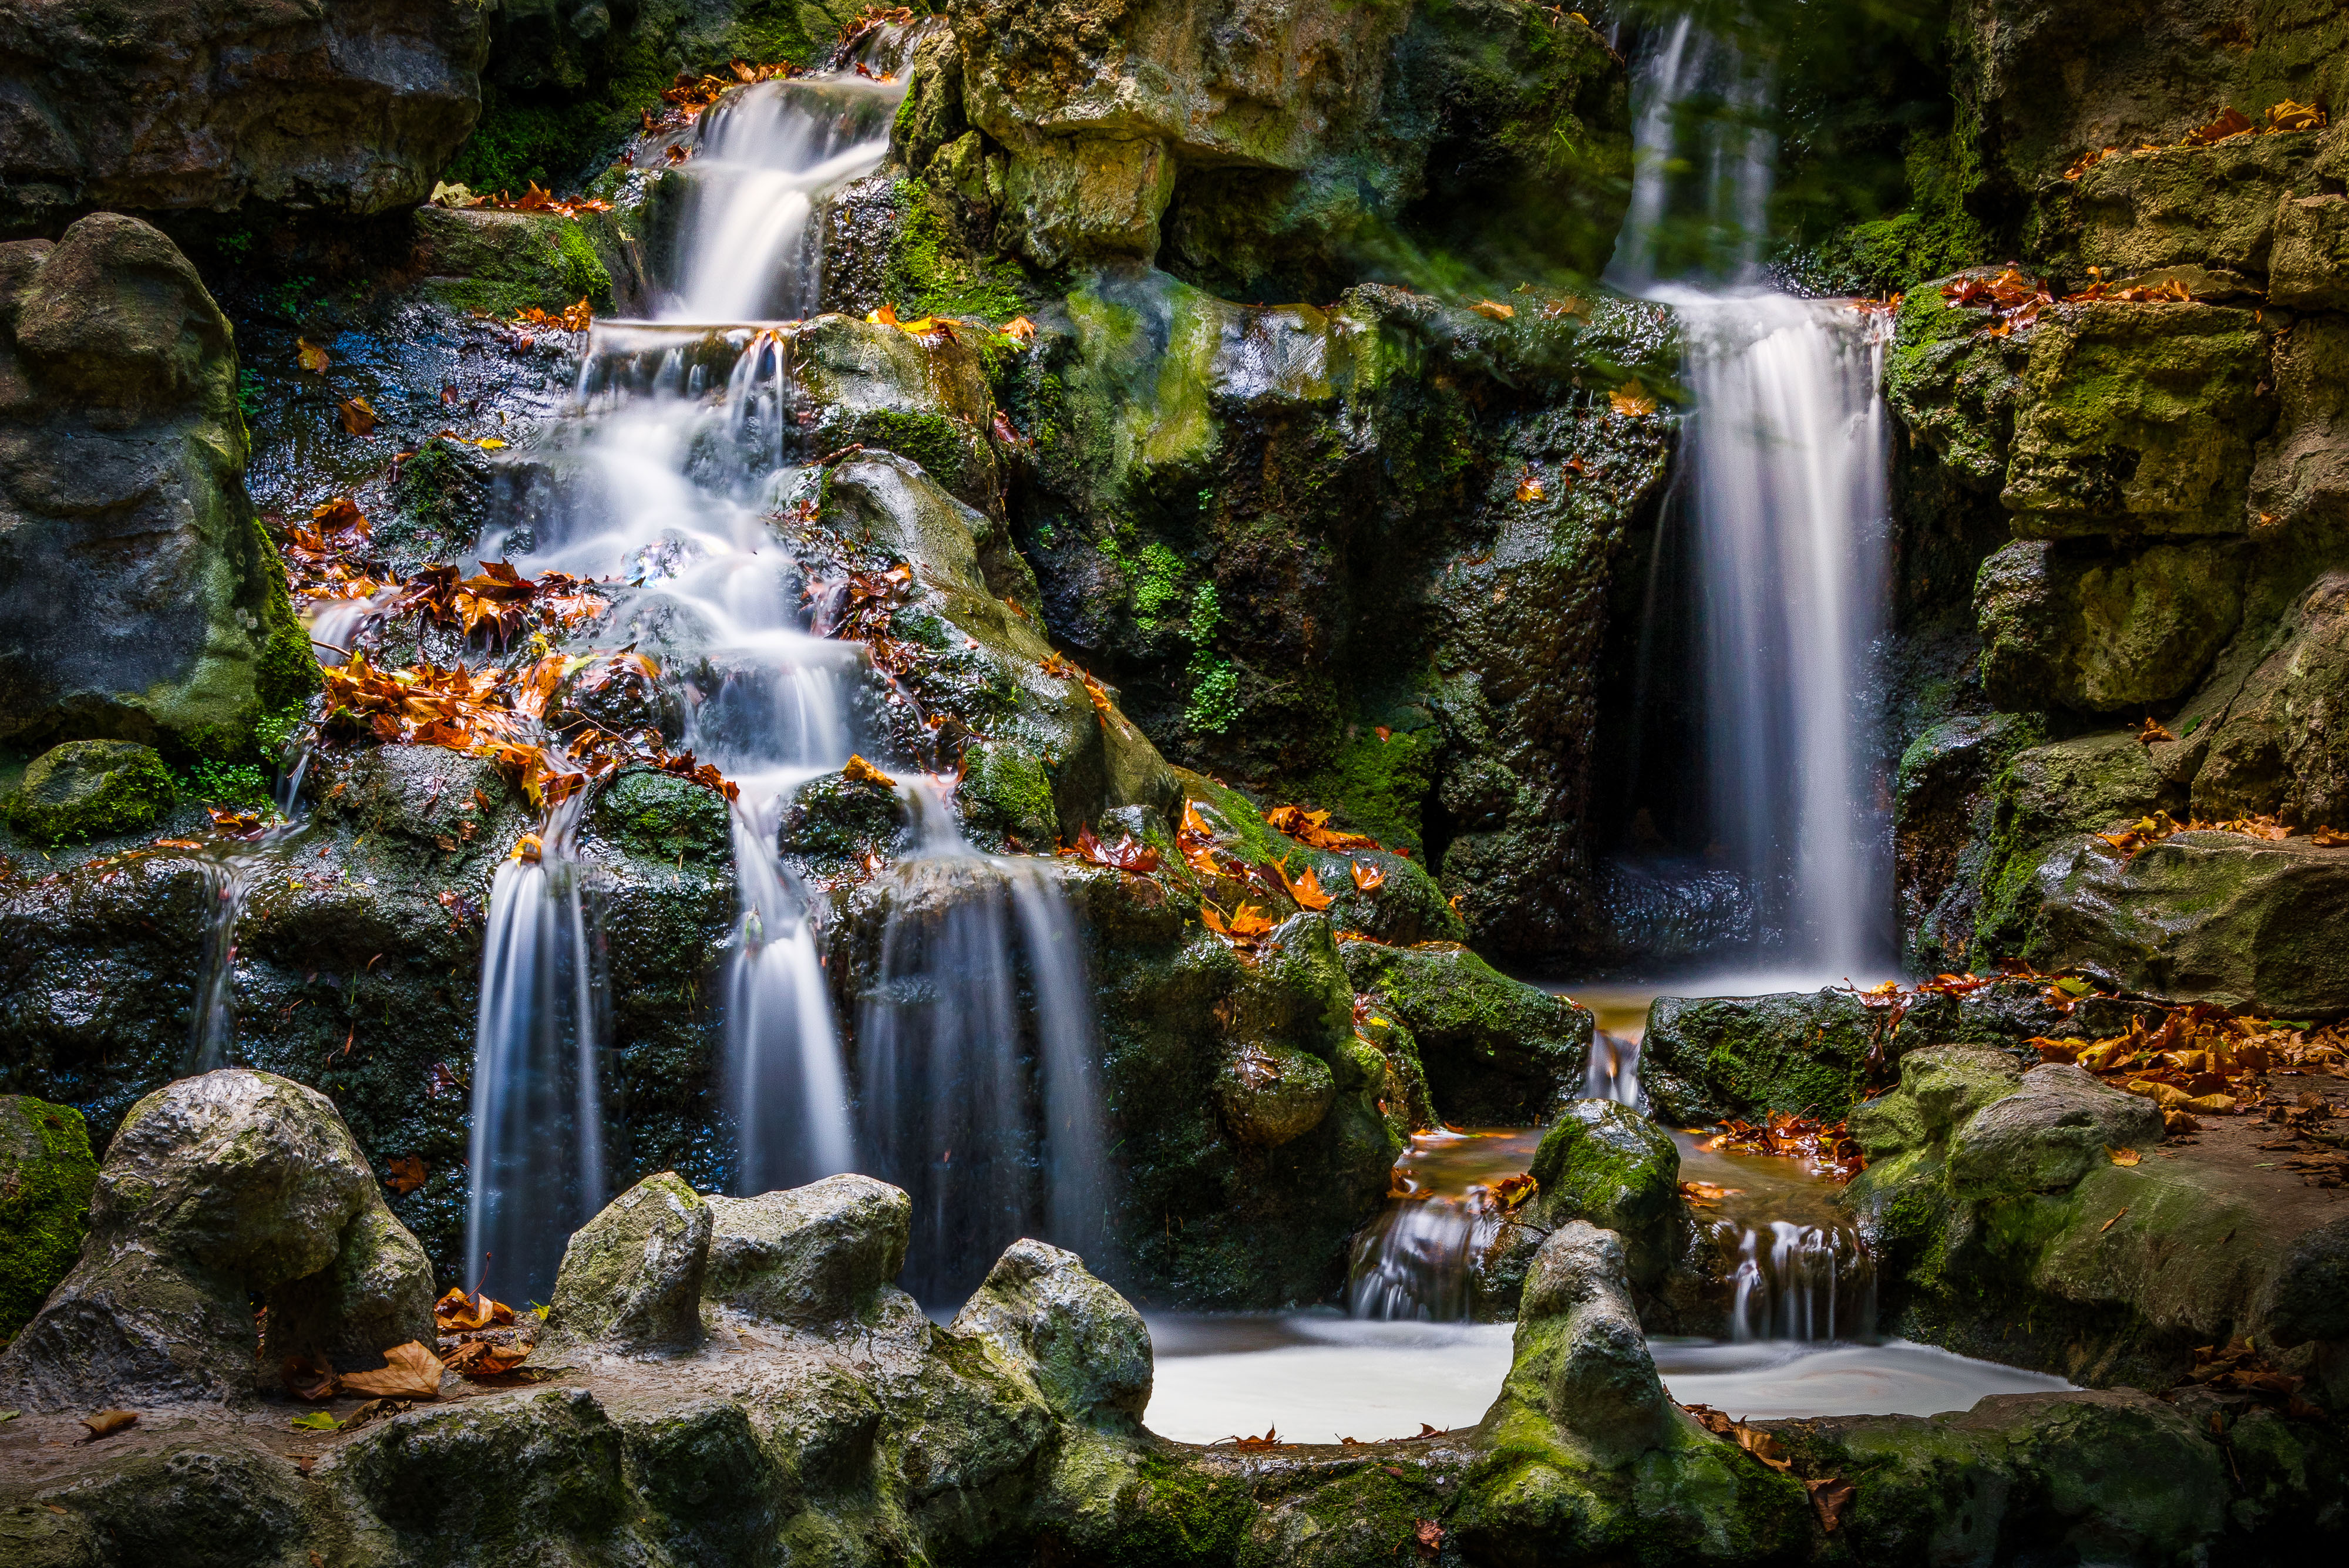 A long exposure (25 seconds) of a Waterfall located in France to get the silky effect